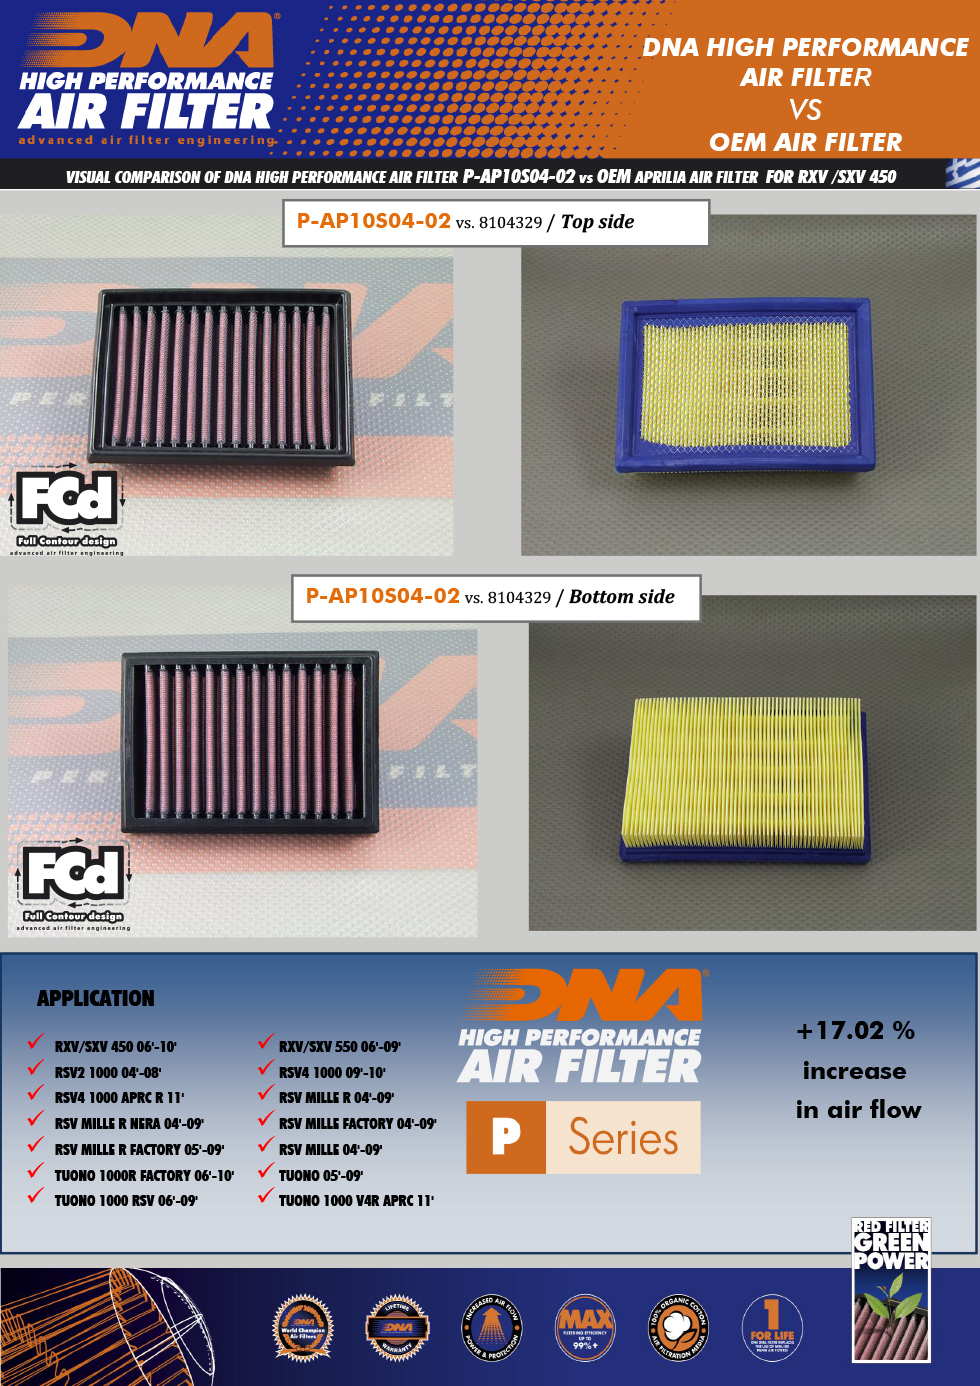 dna air filters maximize surface area resulting in complete efficiency for your system